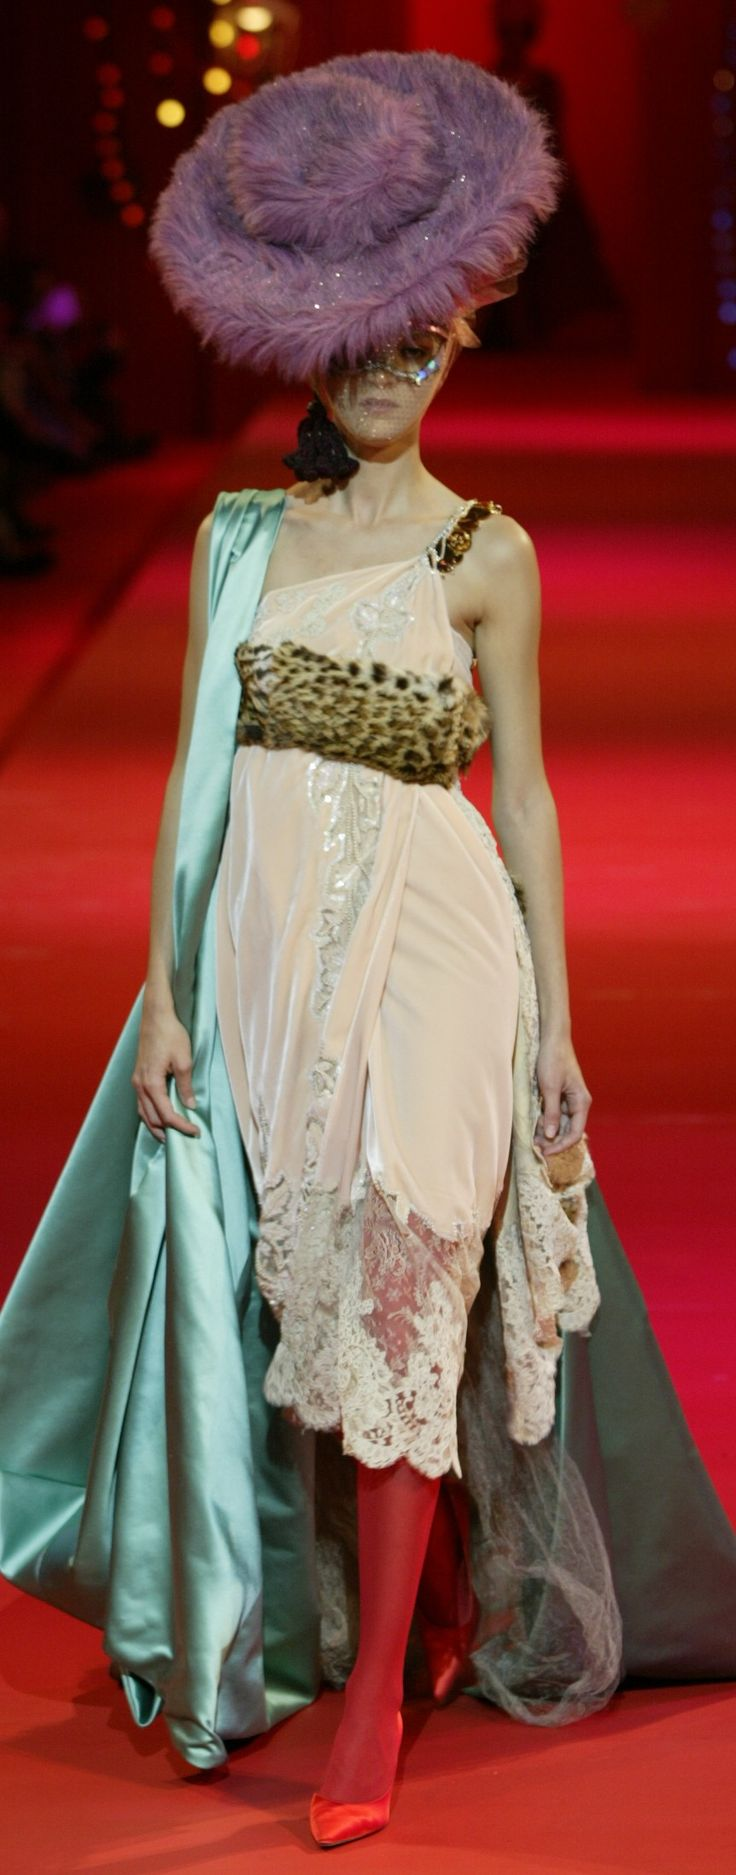 39 best images about lacroix darling 2002 on pinterest for Haute couture definition